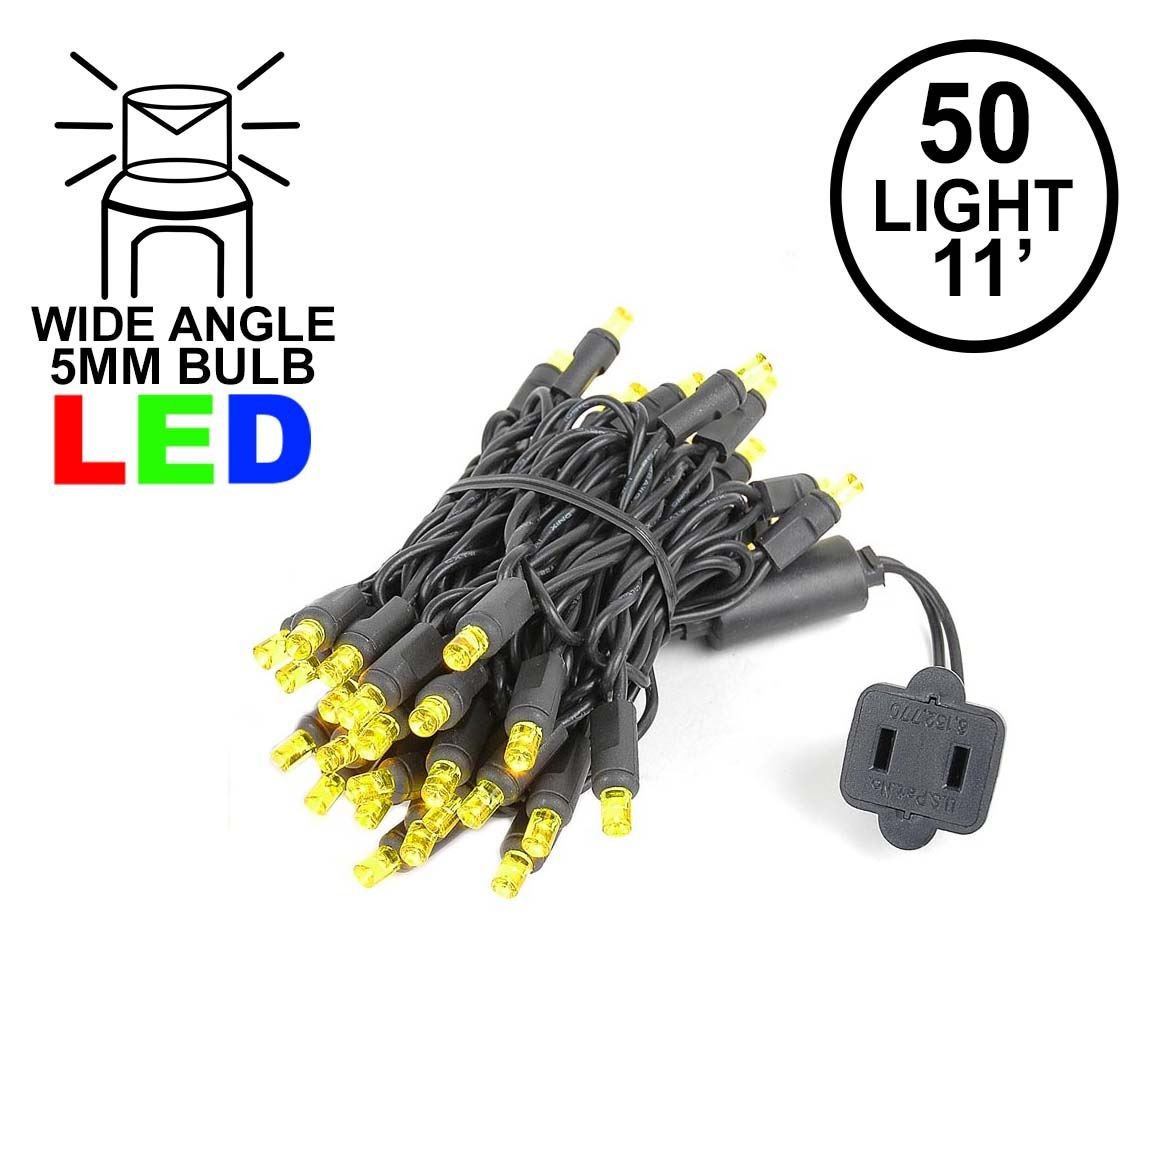 Picture of 50 LED Yellow, Black Wire LED Christmas Lights 11' Long